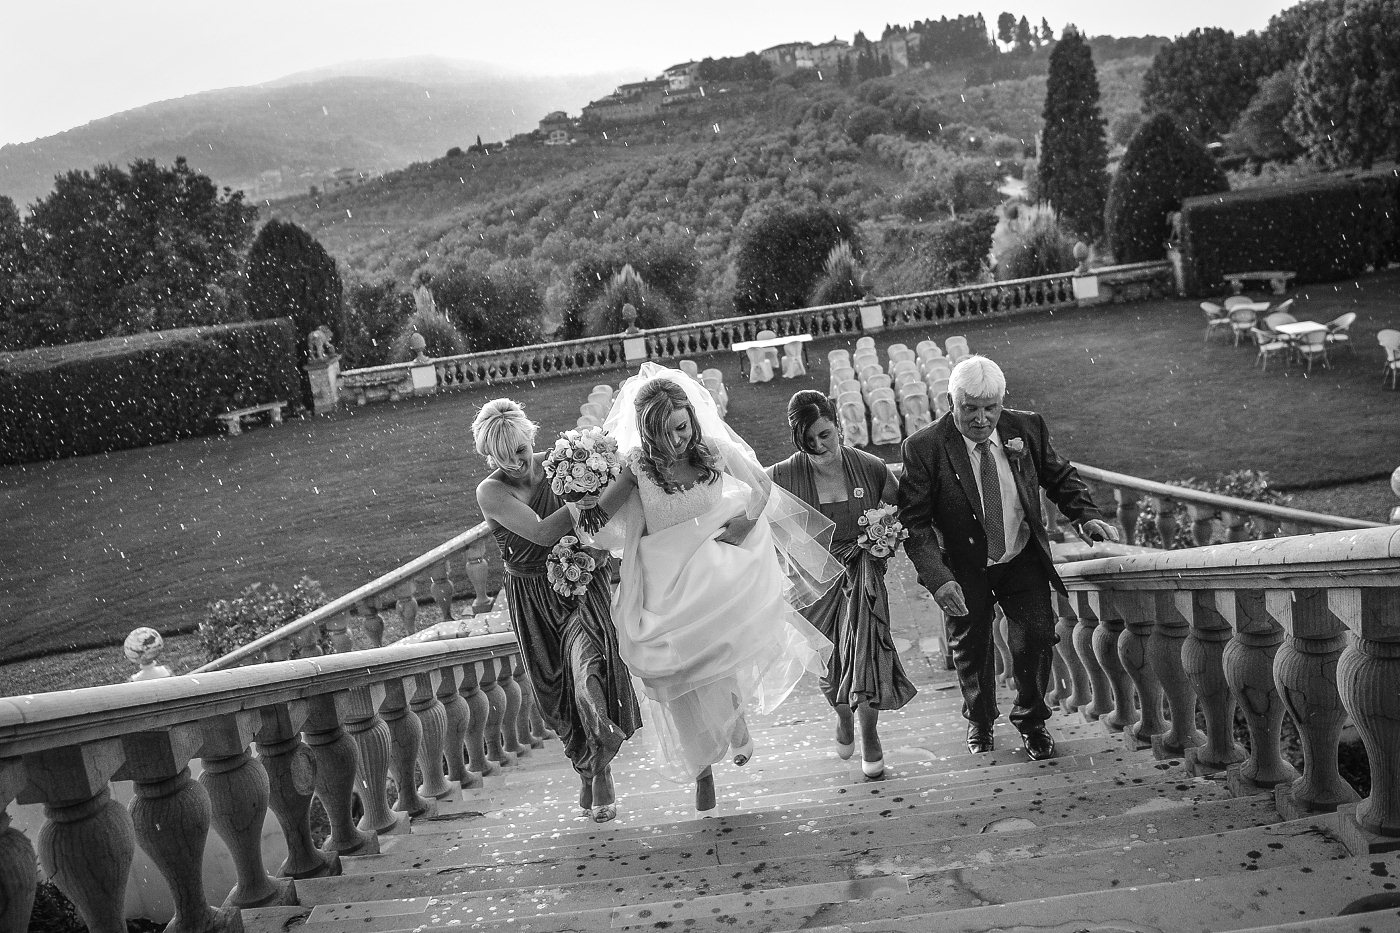 wedding photo artimino_05.jpg